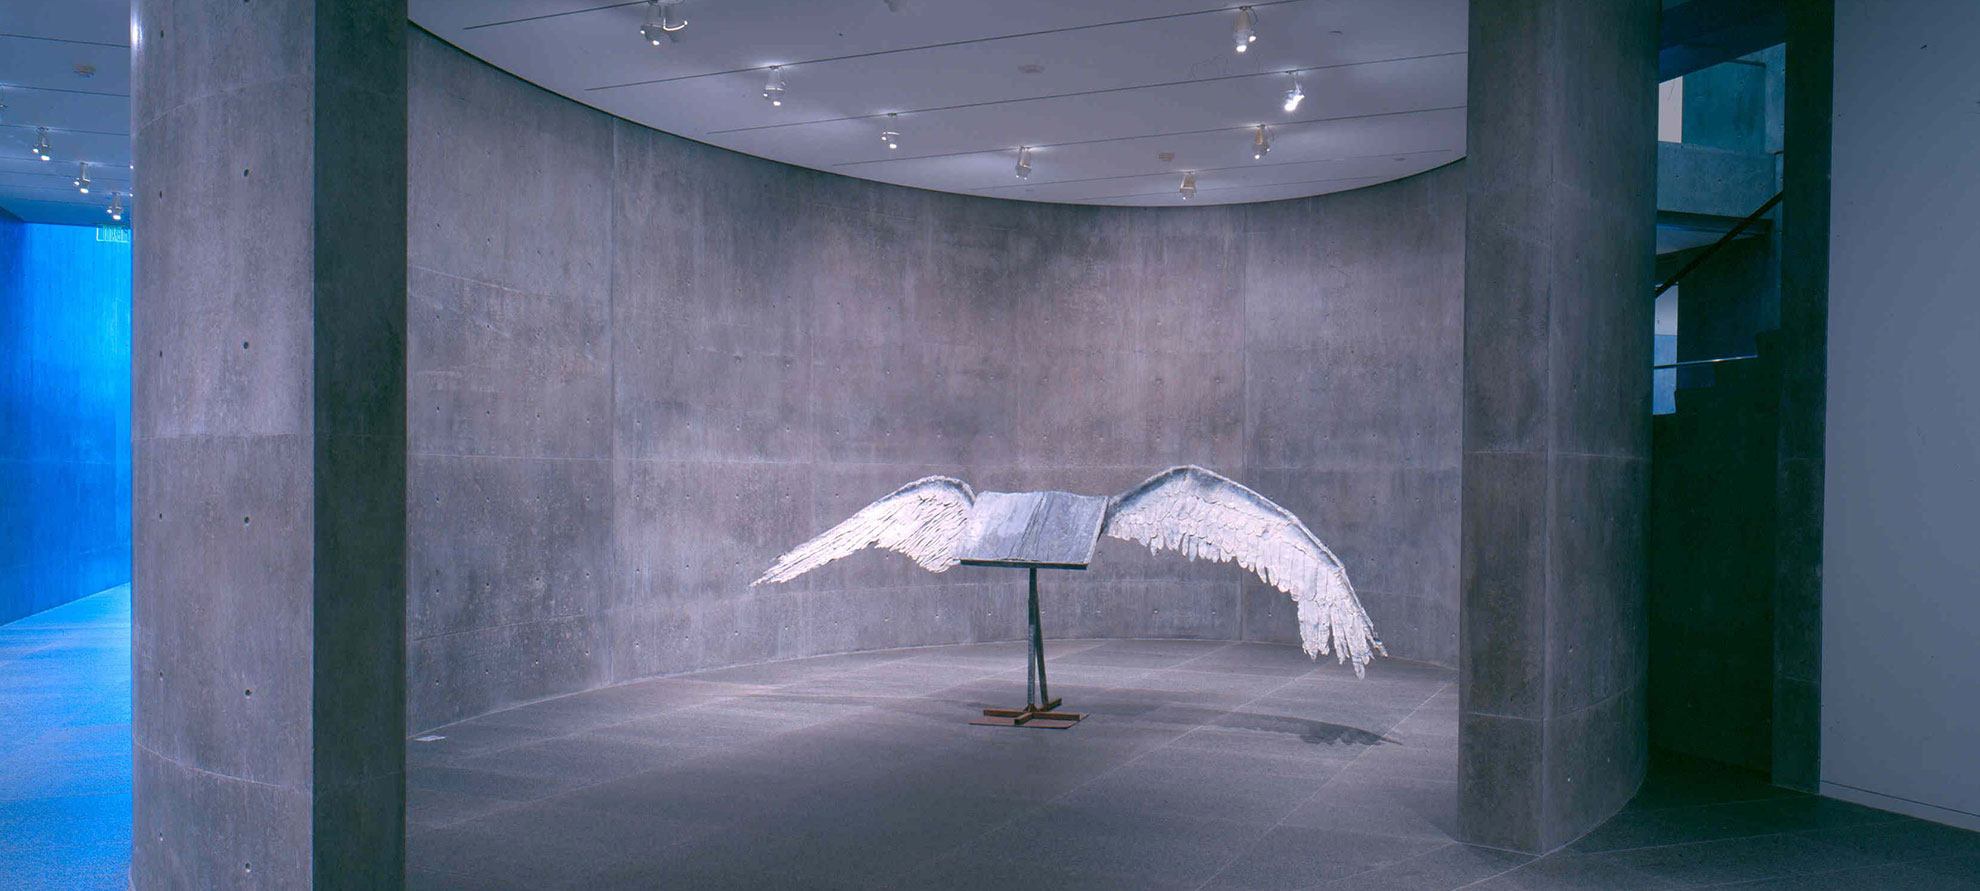 Anselm Keifer,  Buch mit Flügeln (Book with Wings), 1992–94